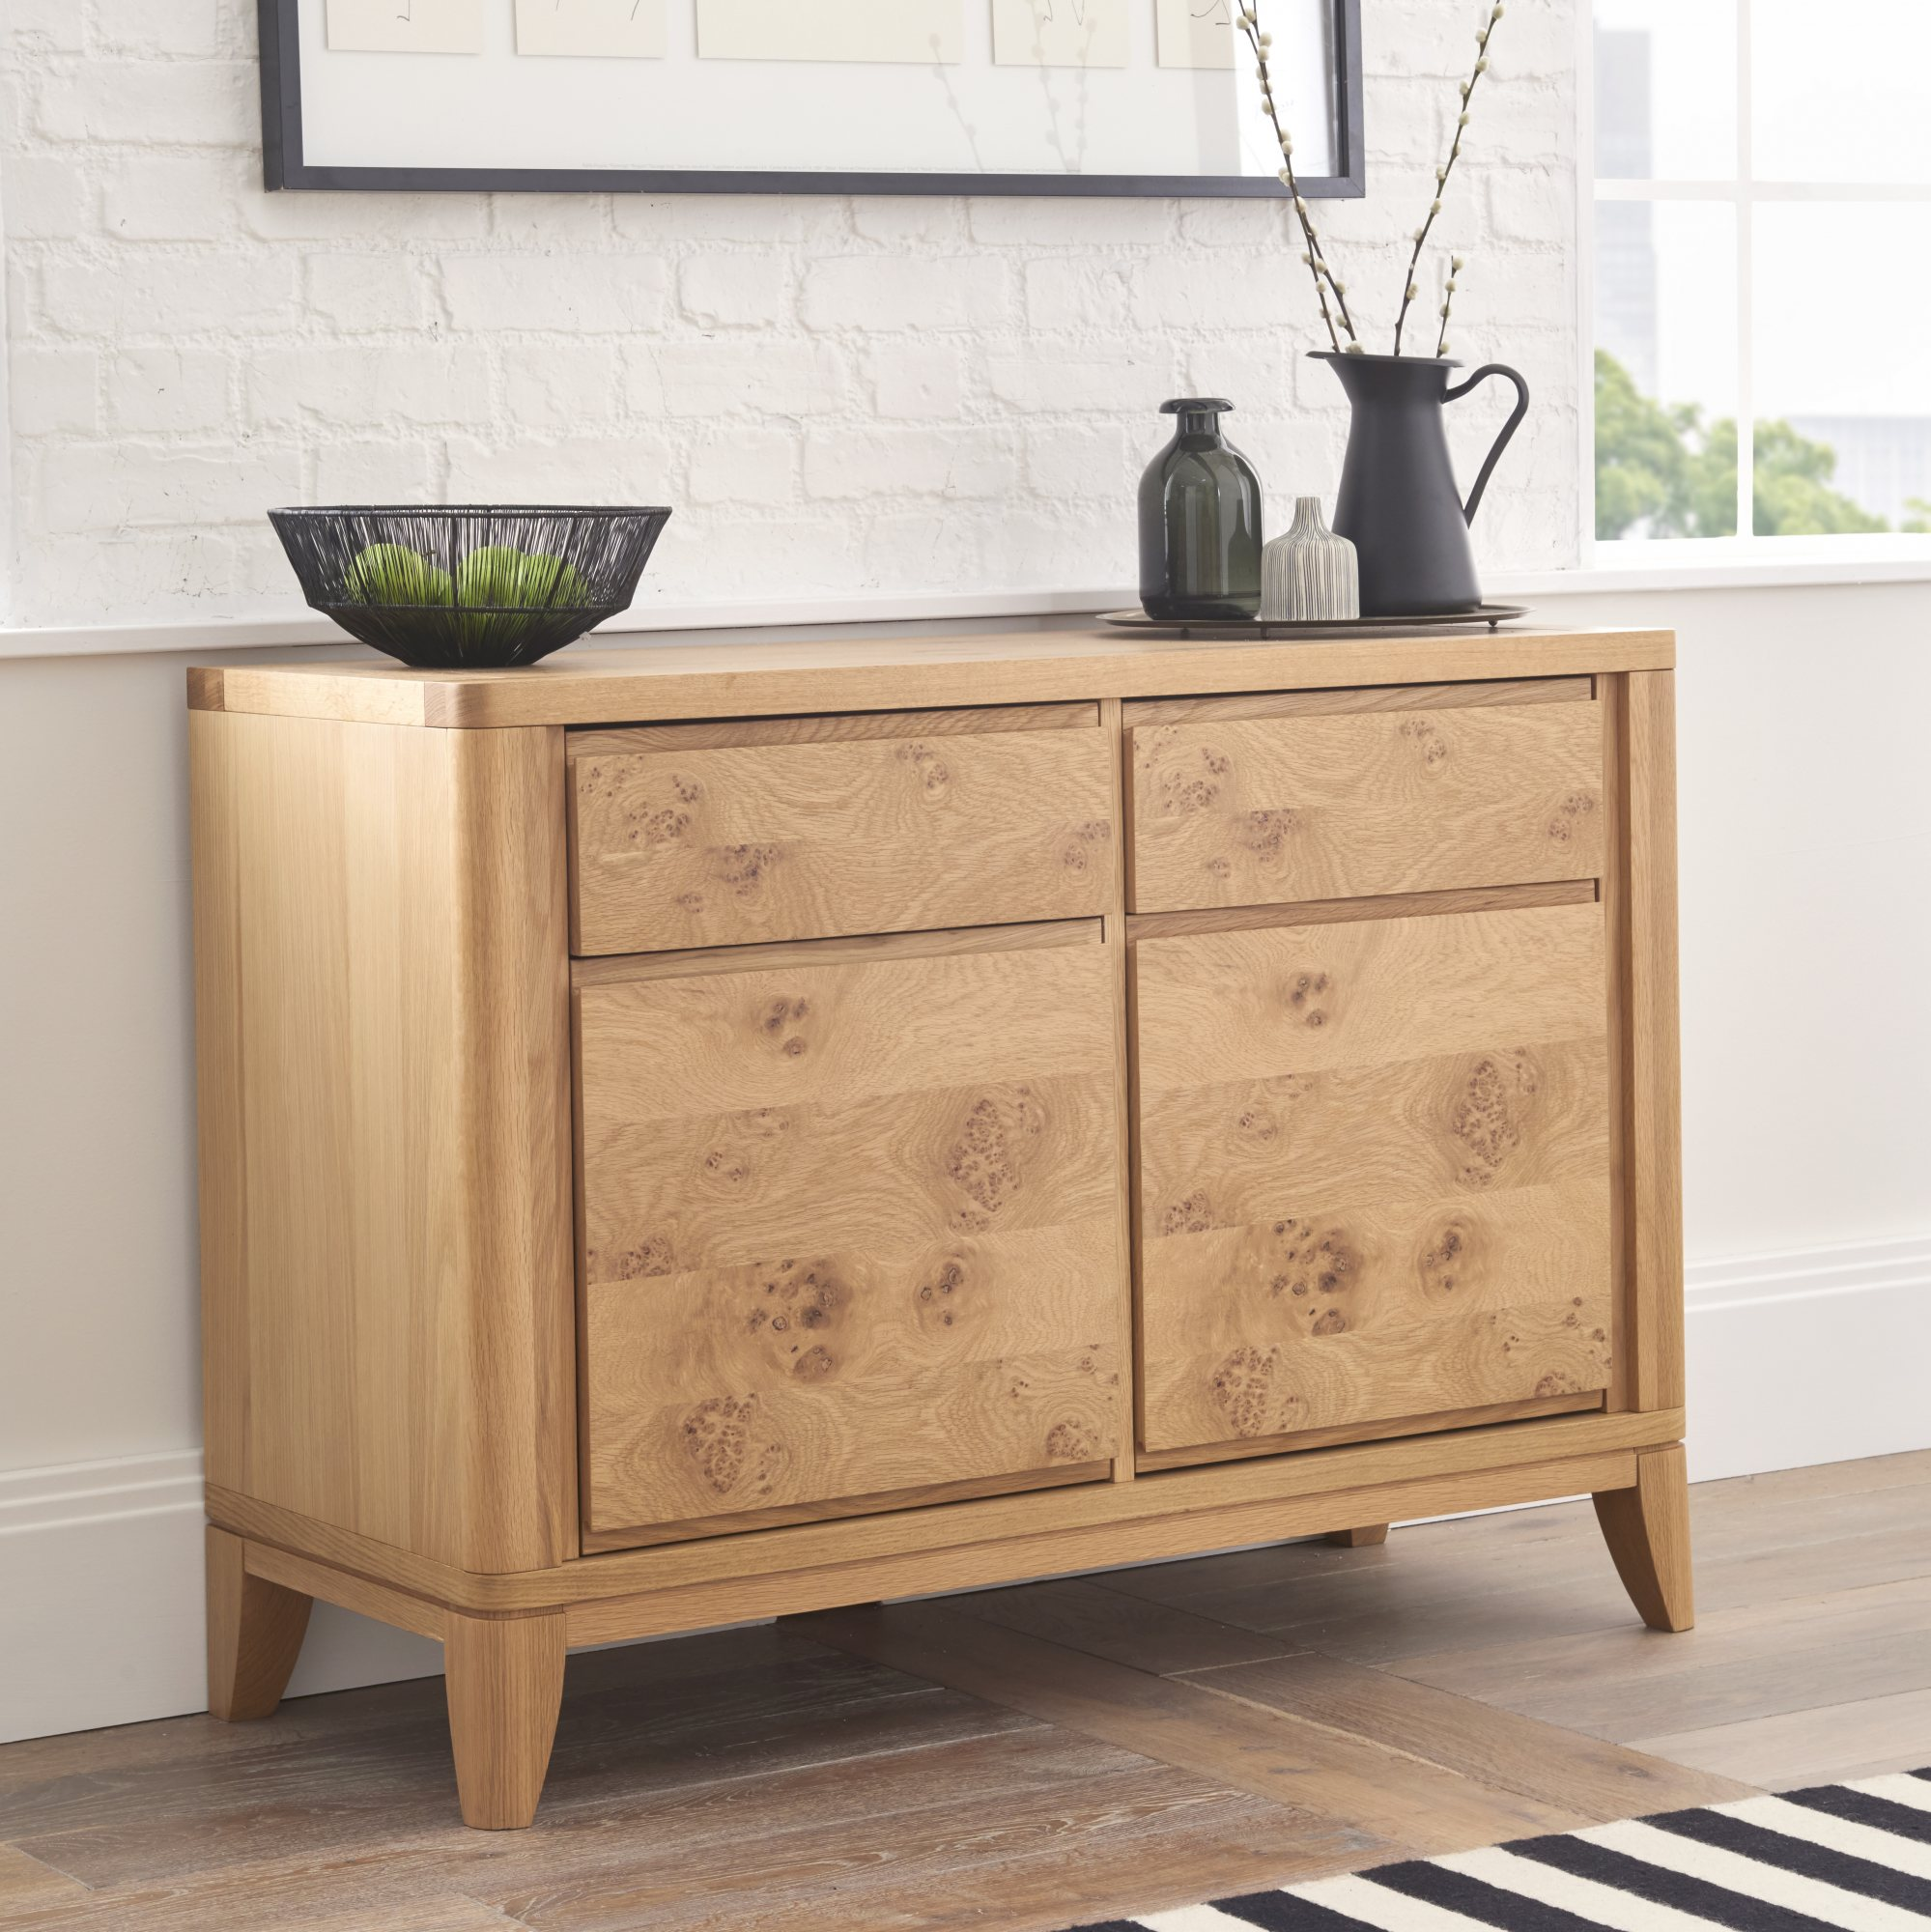 WILLOW PARK NARROW SIDEBOARD - L110cm x D45cm x H80cm